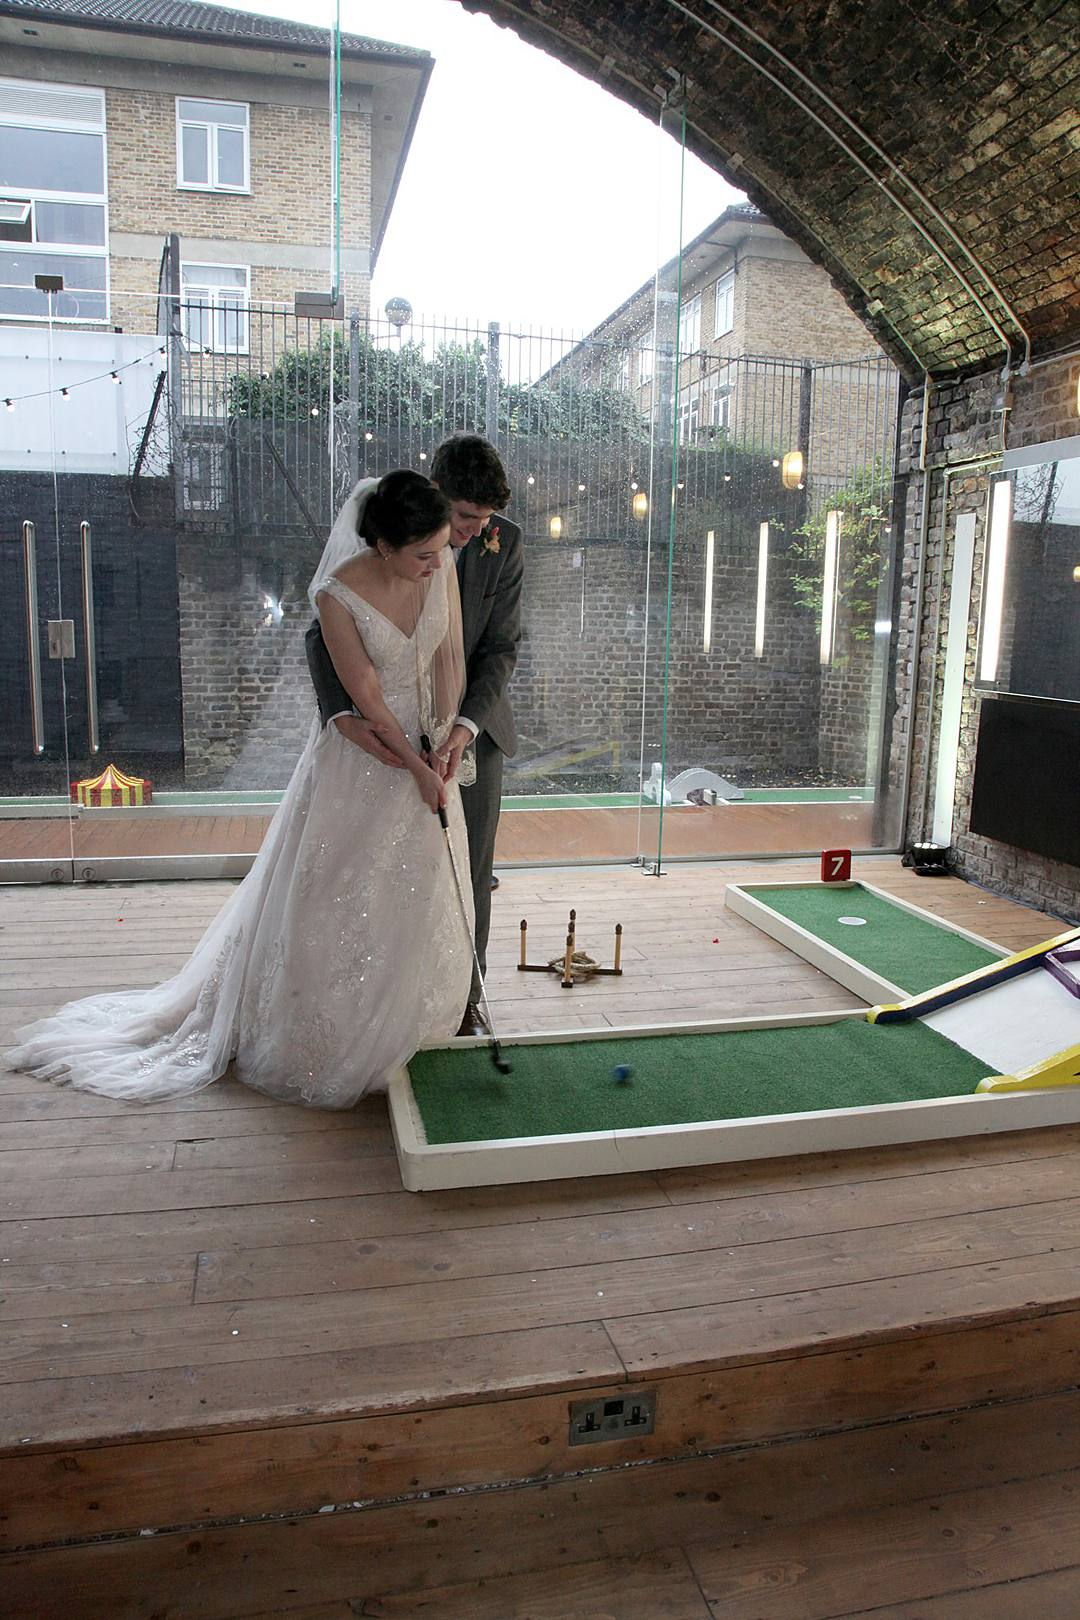 Fun Hackney Wedding,, Crazy Golf, Profiterole Tower, Red London Bus Hire, Wedding Planner, City Wedding, Event Planner, London Wedding Planner, City Weddings, Devine Bride